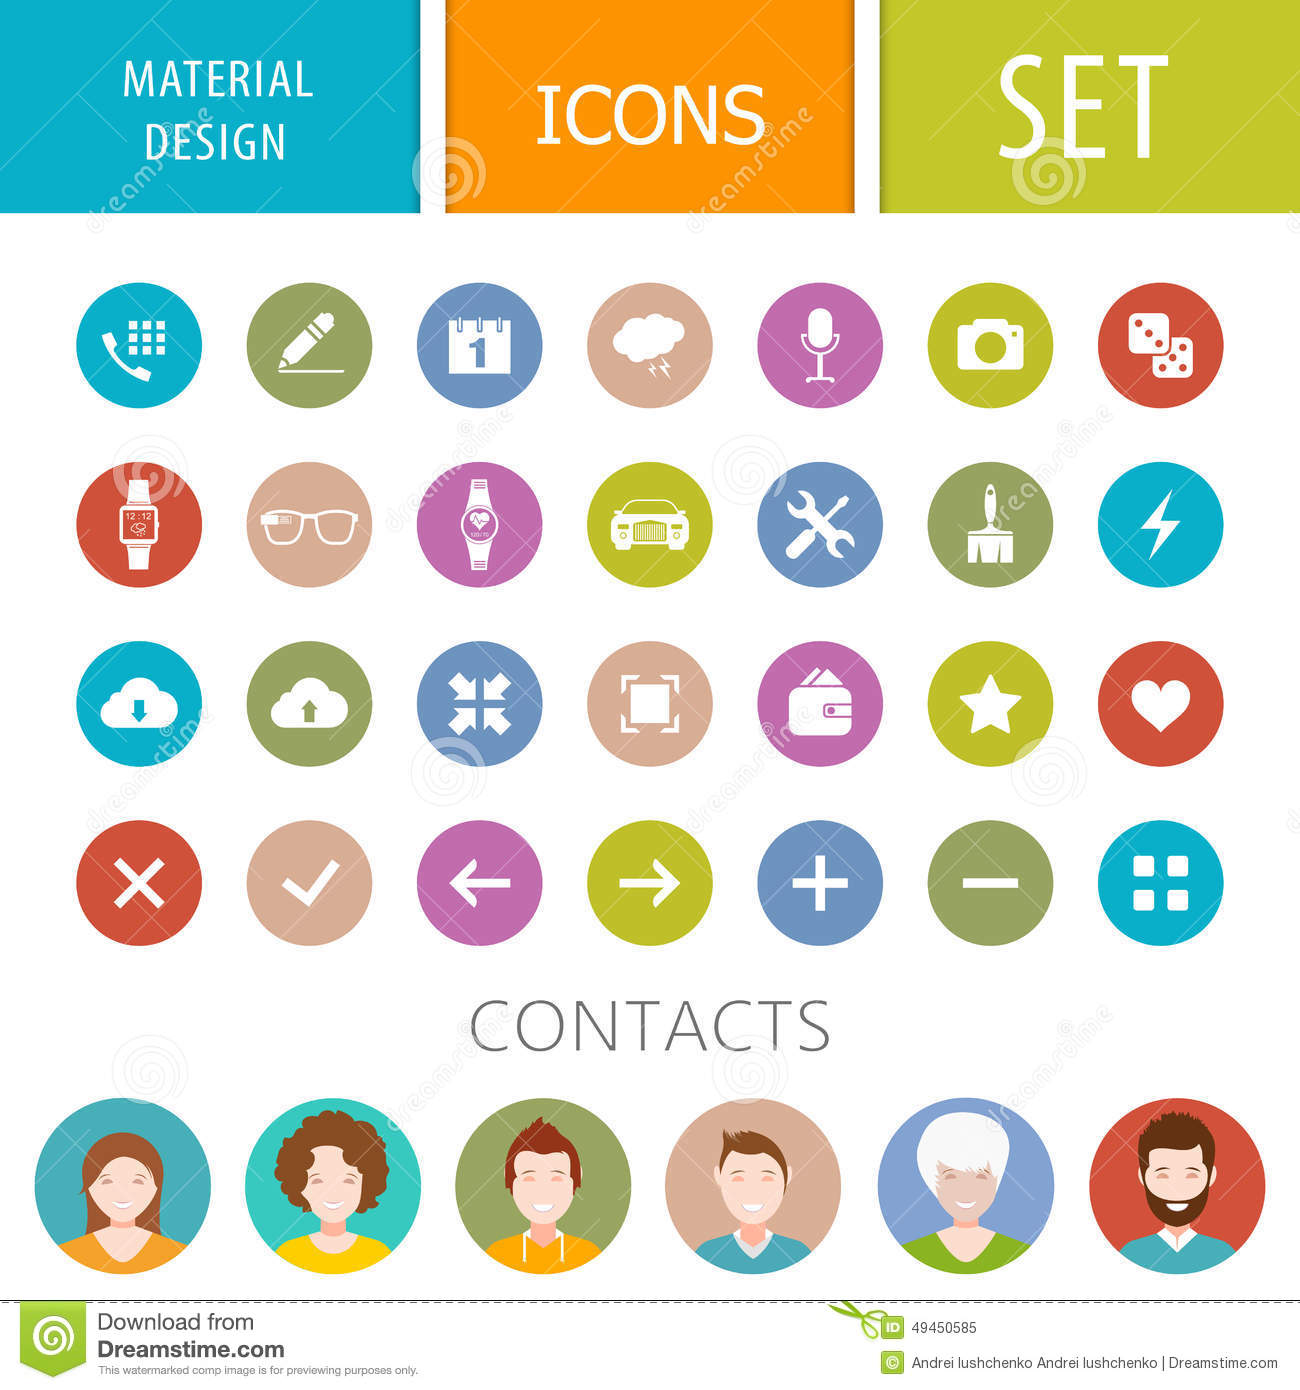 Set Of Icons In The Style Of The Material Design Stock